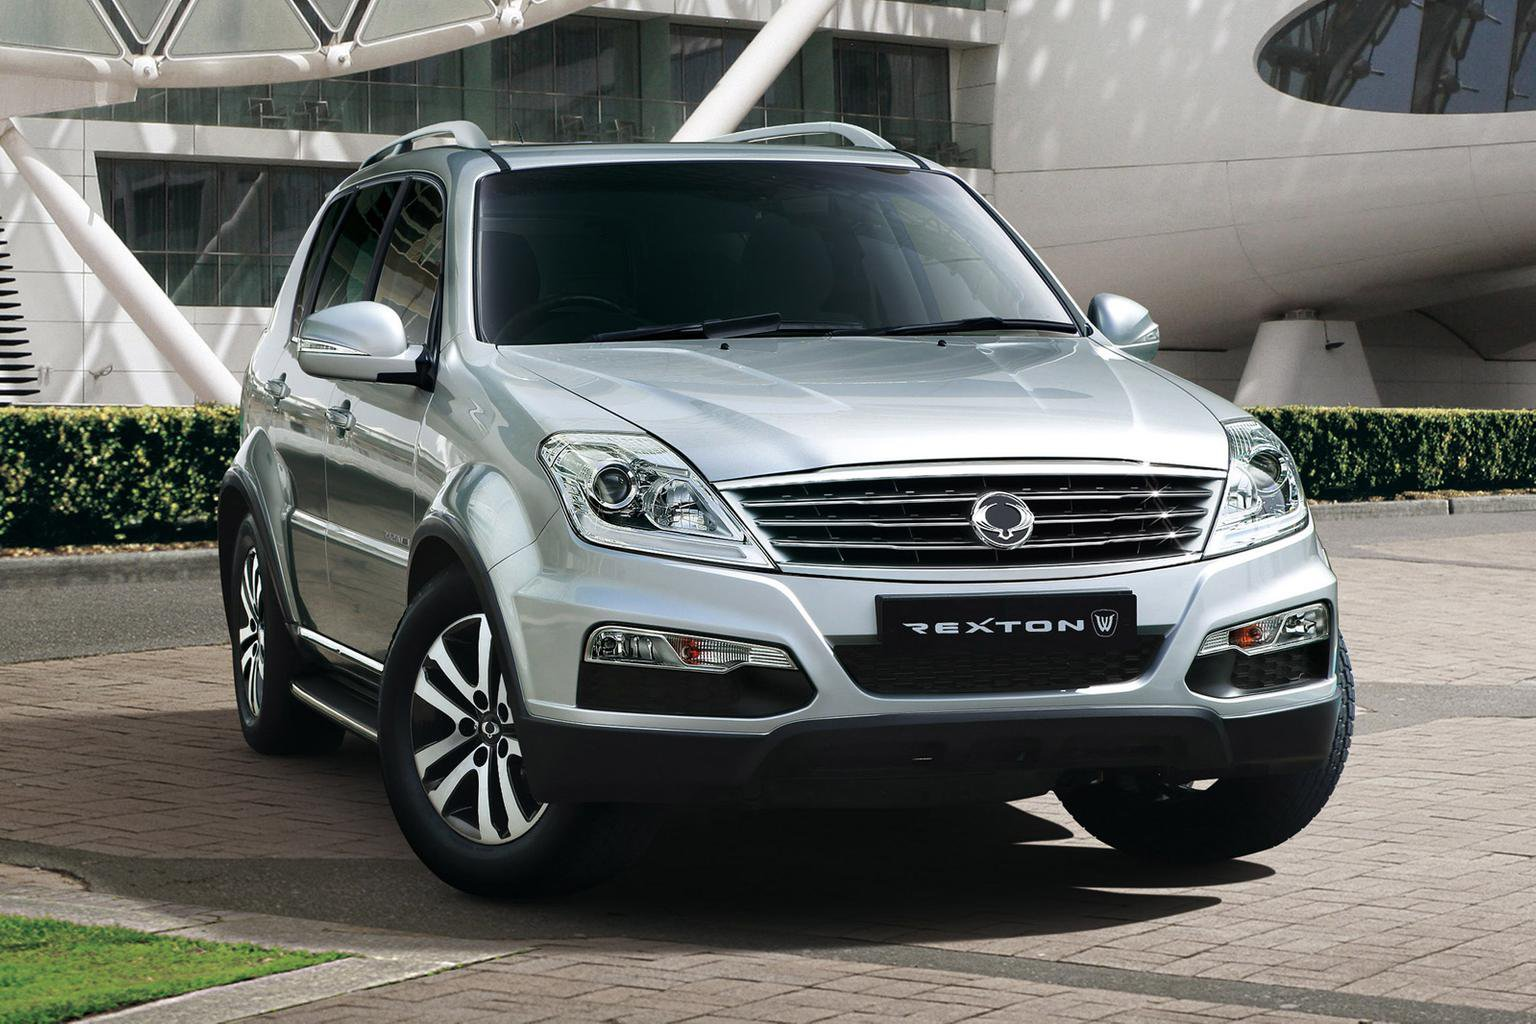 Ssangyong Rexton W pricing announced